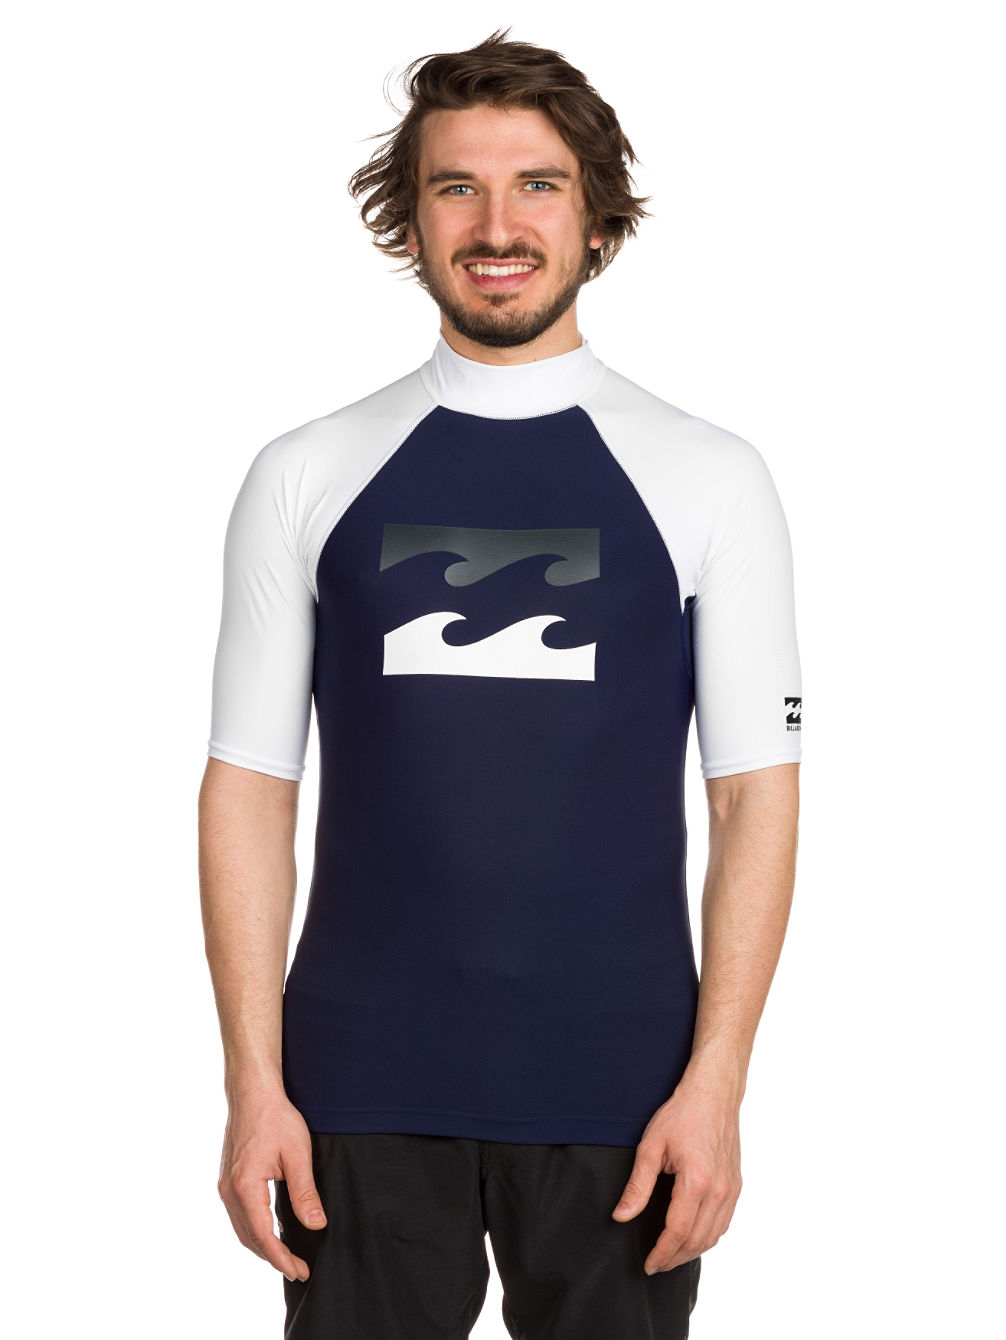 Team Waves Rash Guard